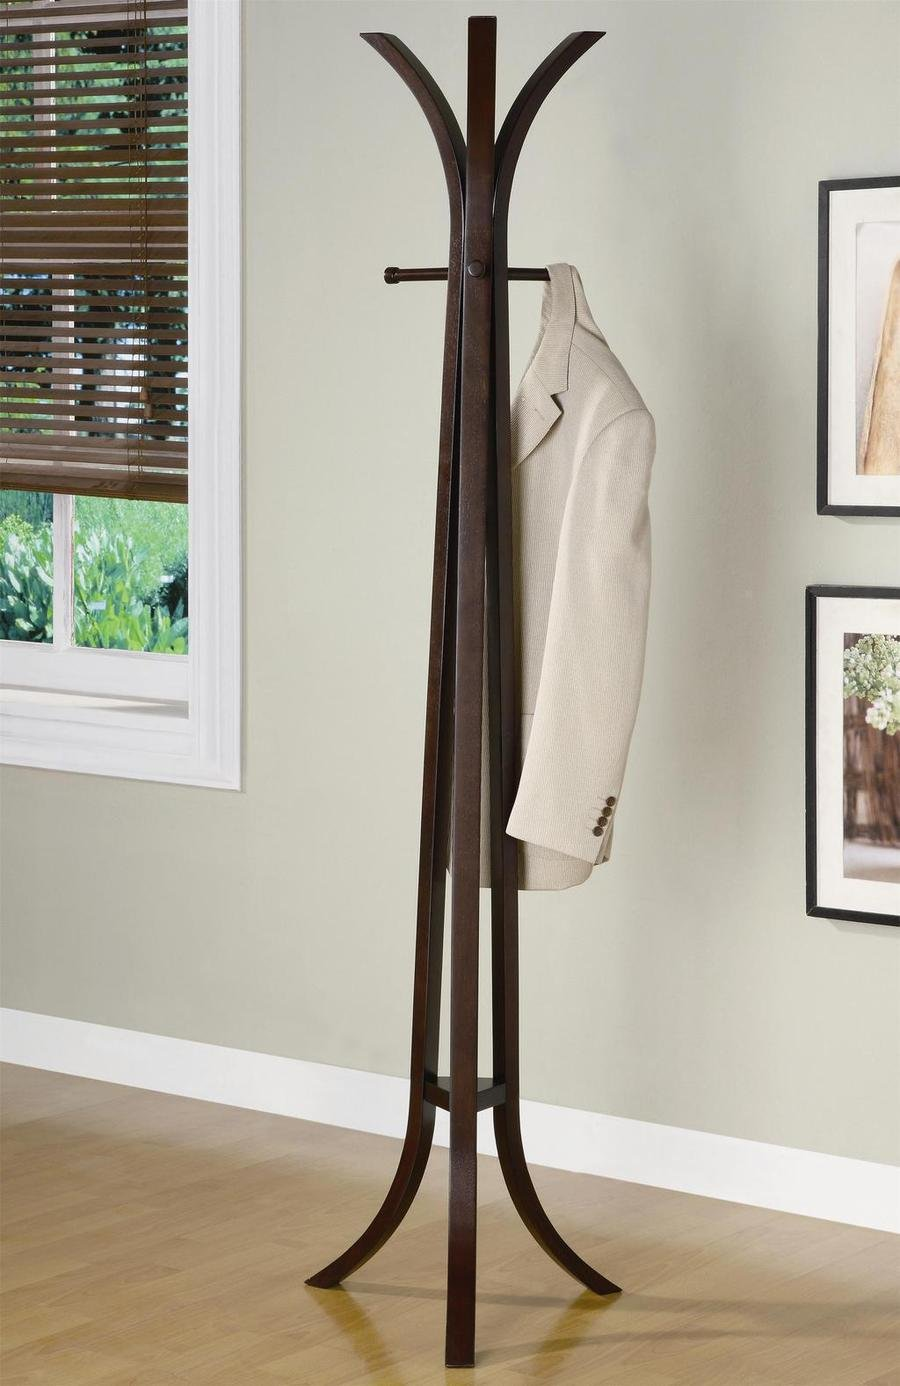 Modern Decor Coat Rack Entryway Hall Tree With Four Hangers In Cappuccino Solid Wood Finish. (Item# Vista Furniture CF900816)